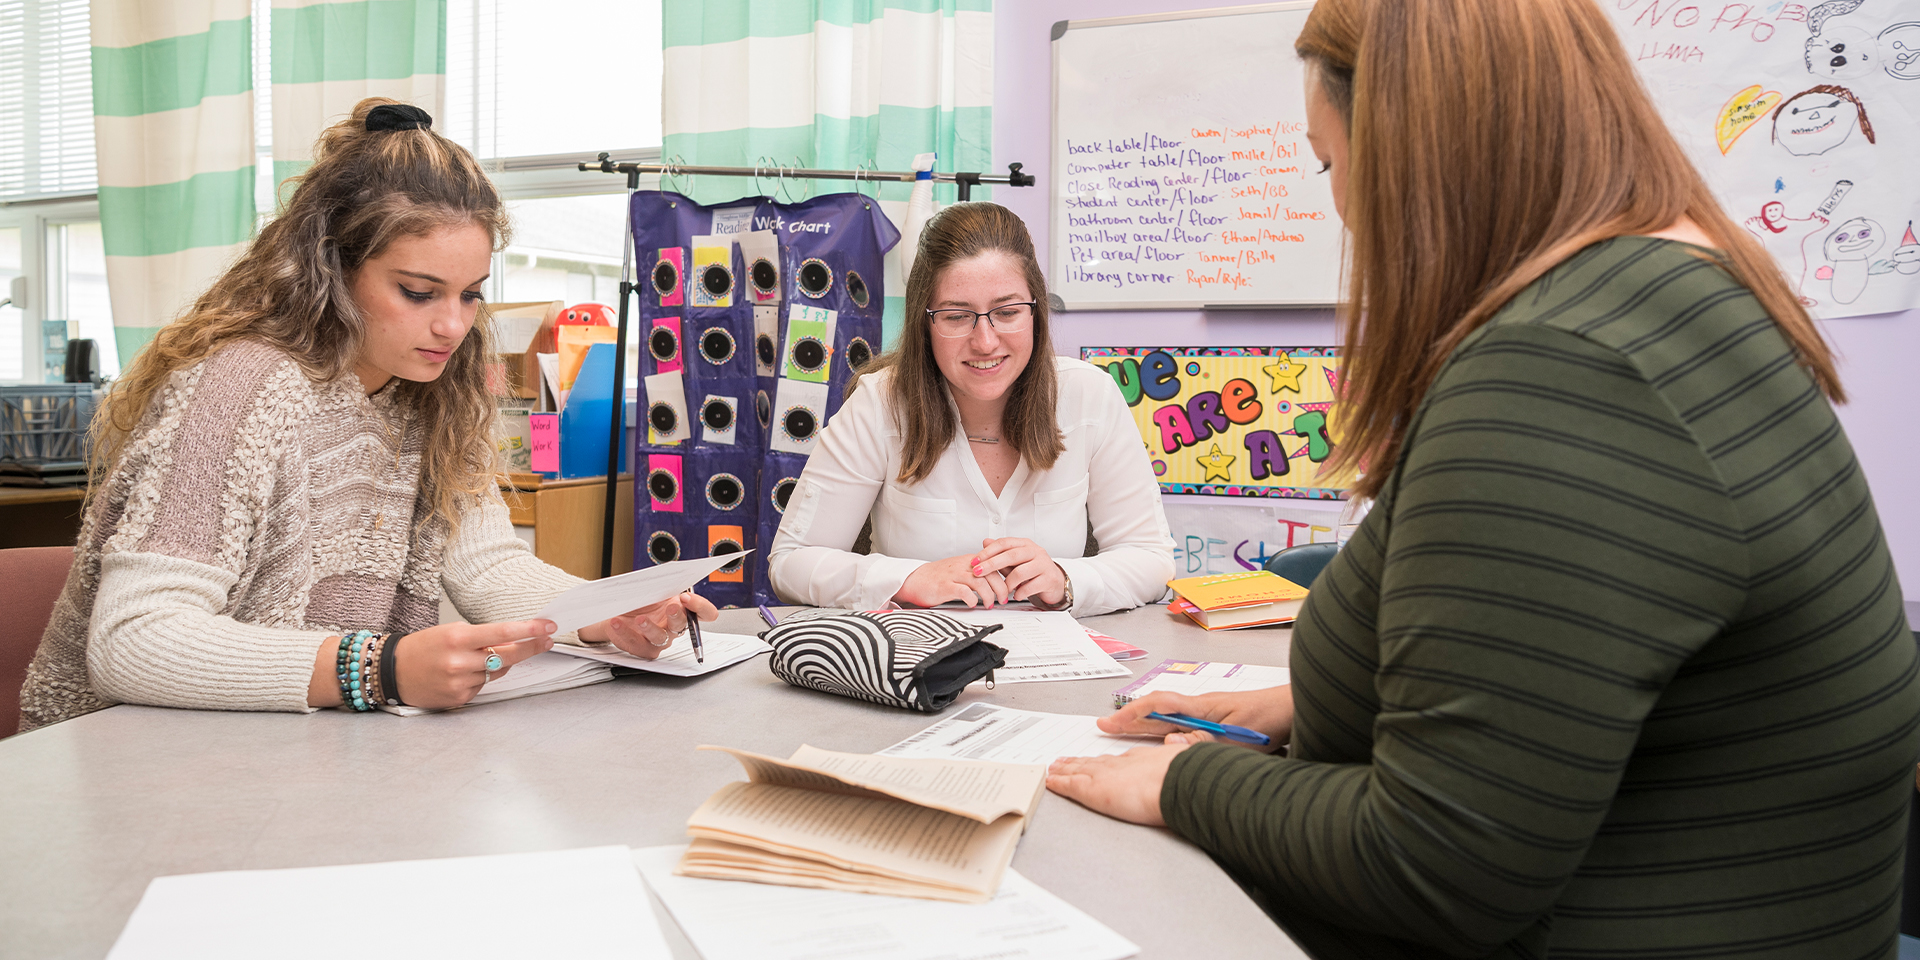 Clinical educator speaks to two student teachers